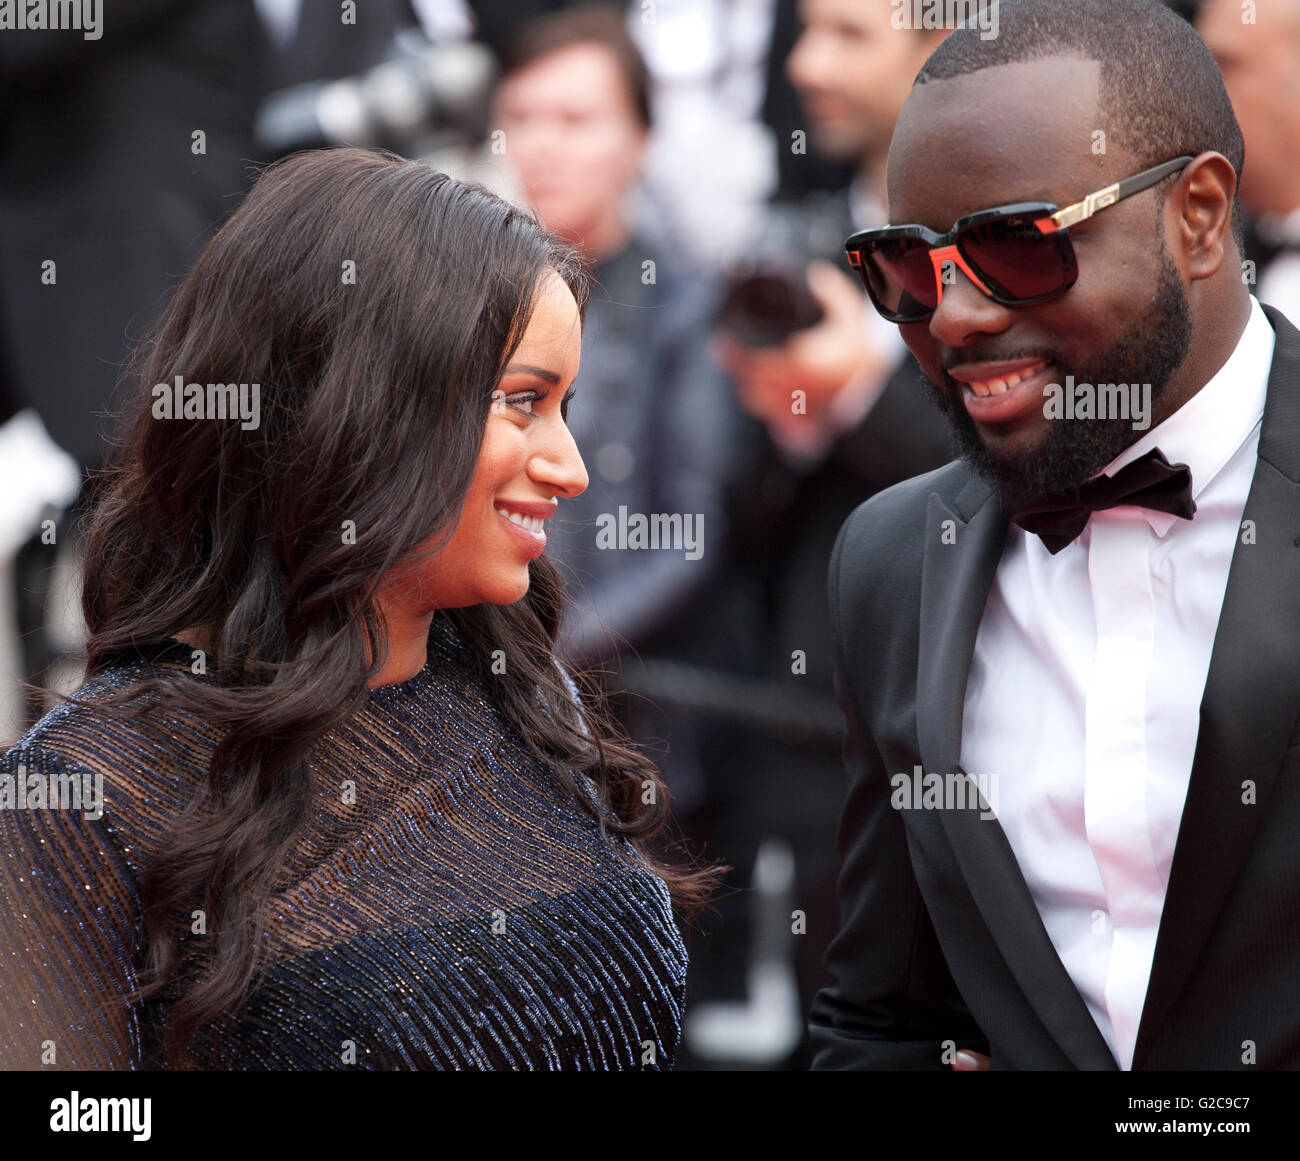 Maitre Gims High Resolution Stock Photography And Images Alamy